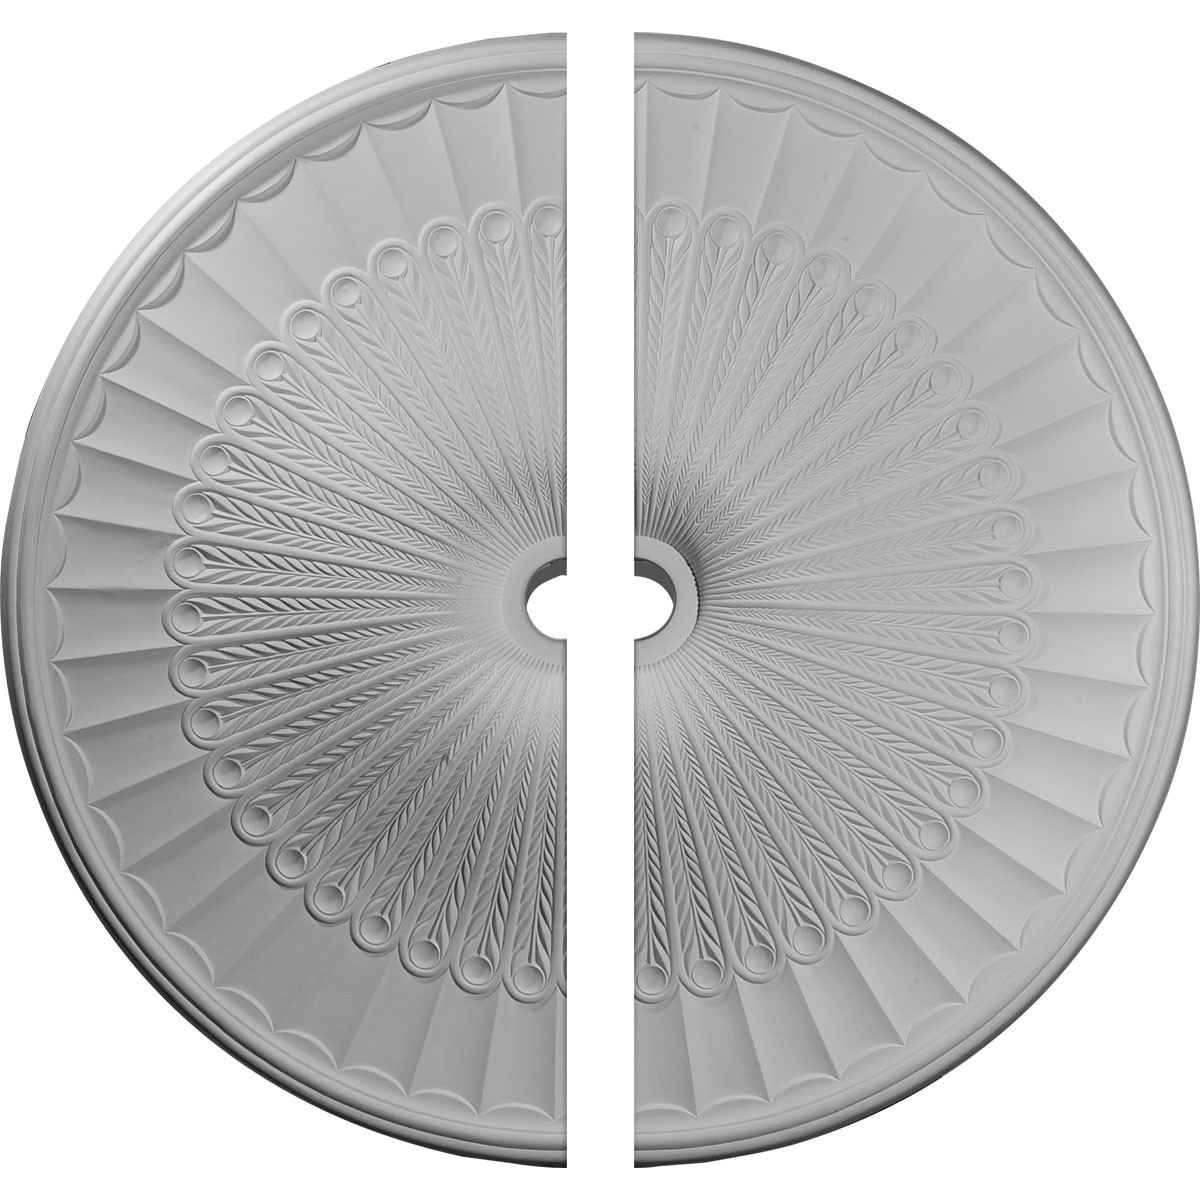 """EM-CM51GL2 - 51""""OD x 3 5/8""""ID x 3 3/8""""P Galveston Ceiling Medallion, Two Piece (Fits Canopies up to 5 7/8"""")"""